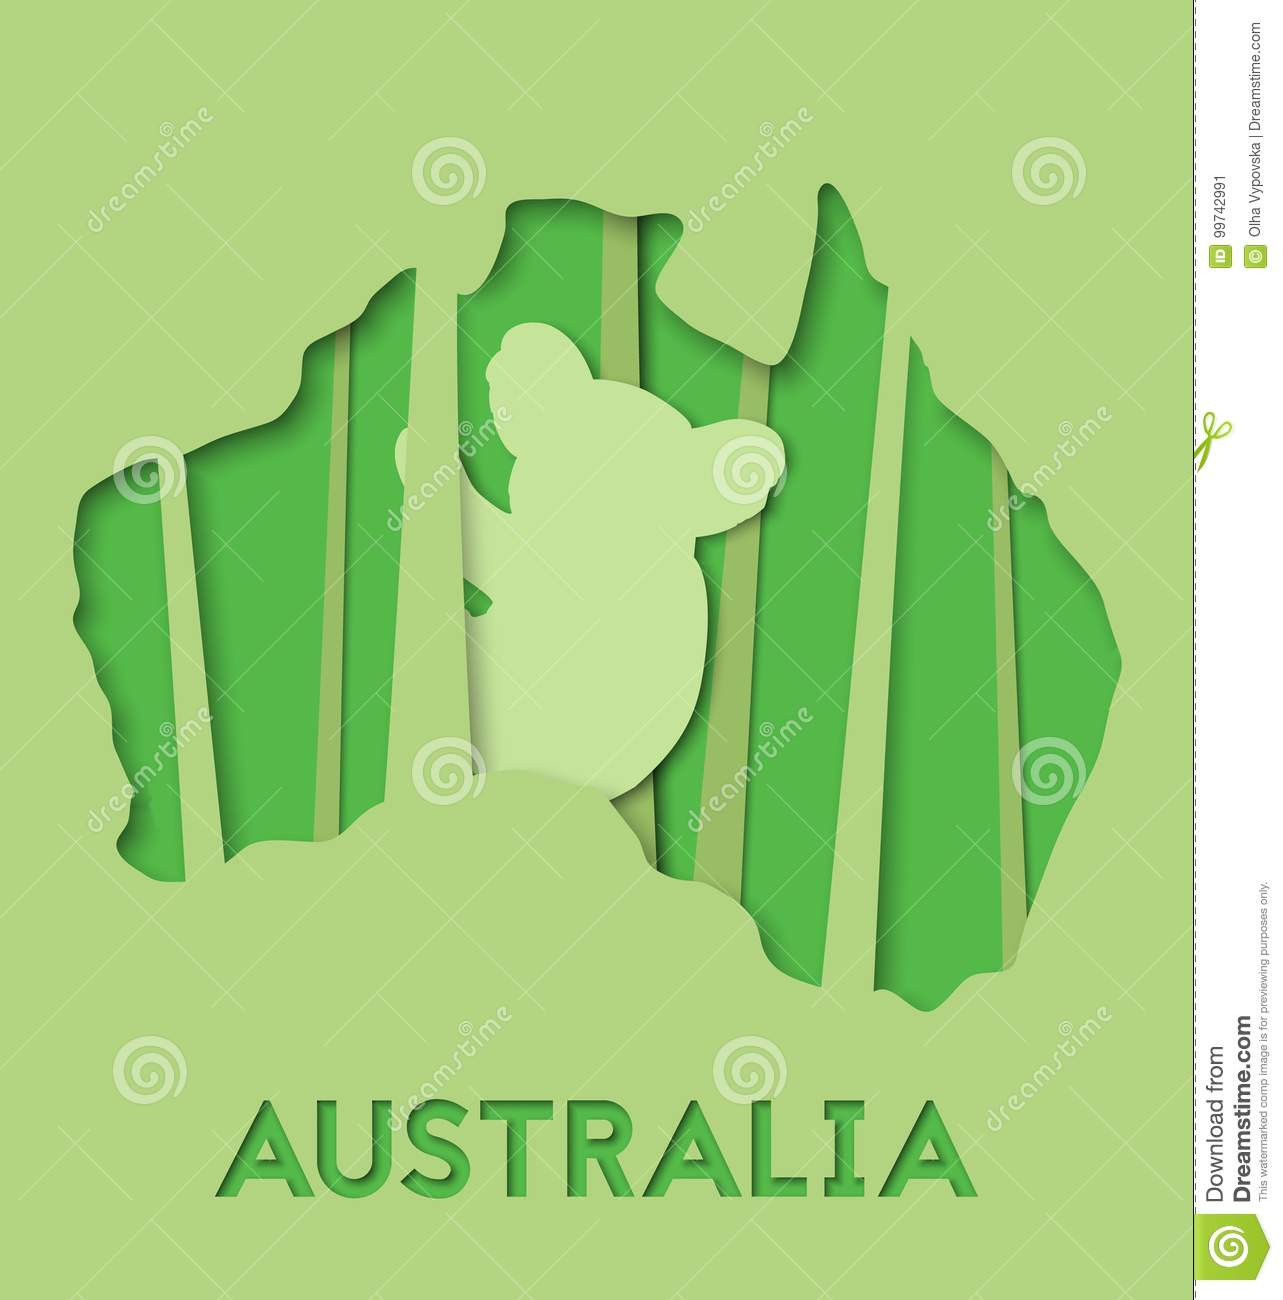 D abstract paper illlustration of australia green map with koala